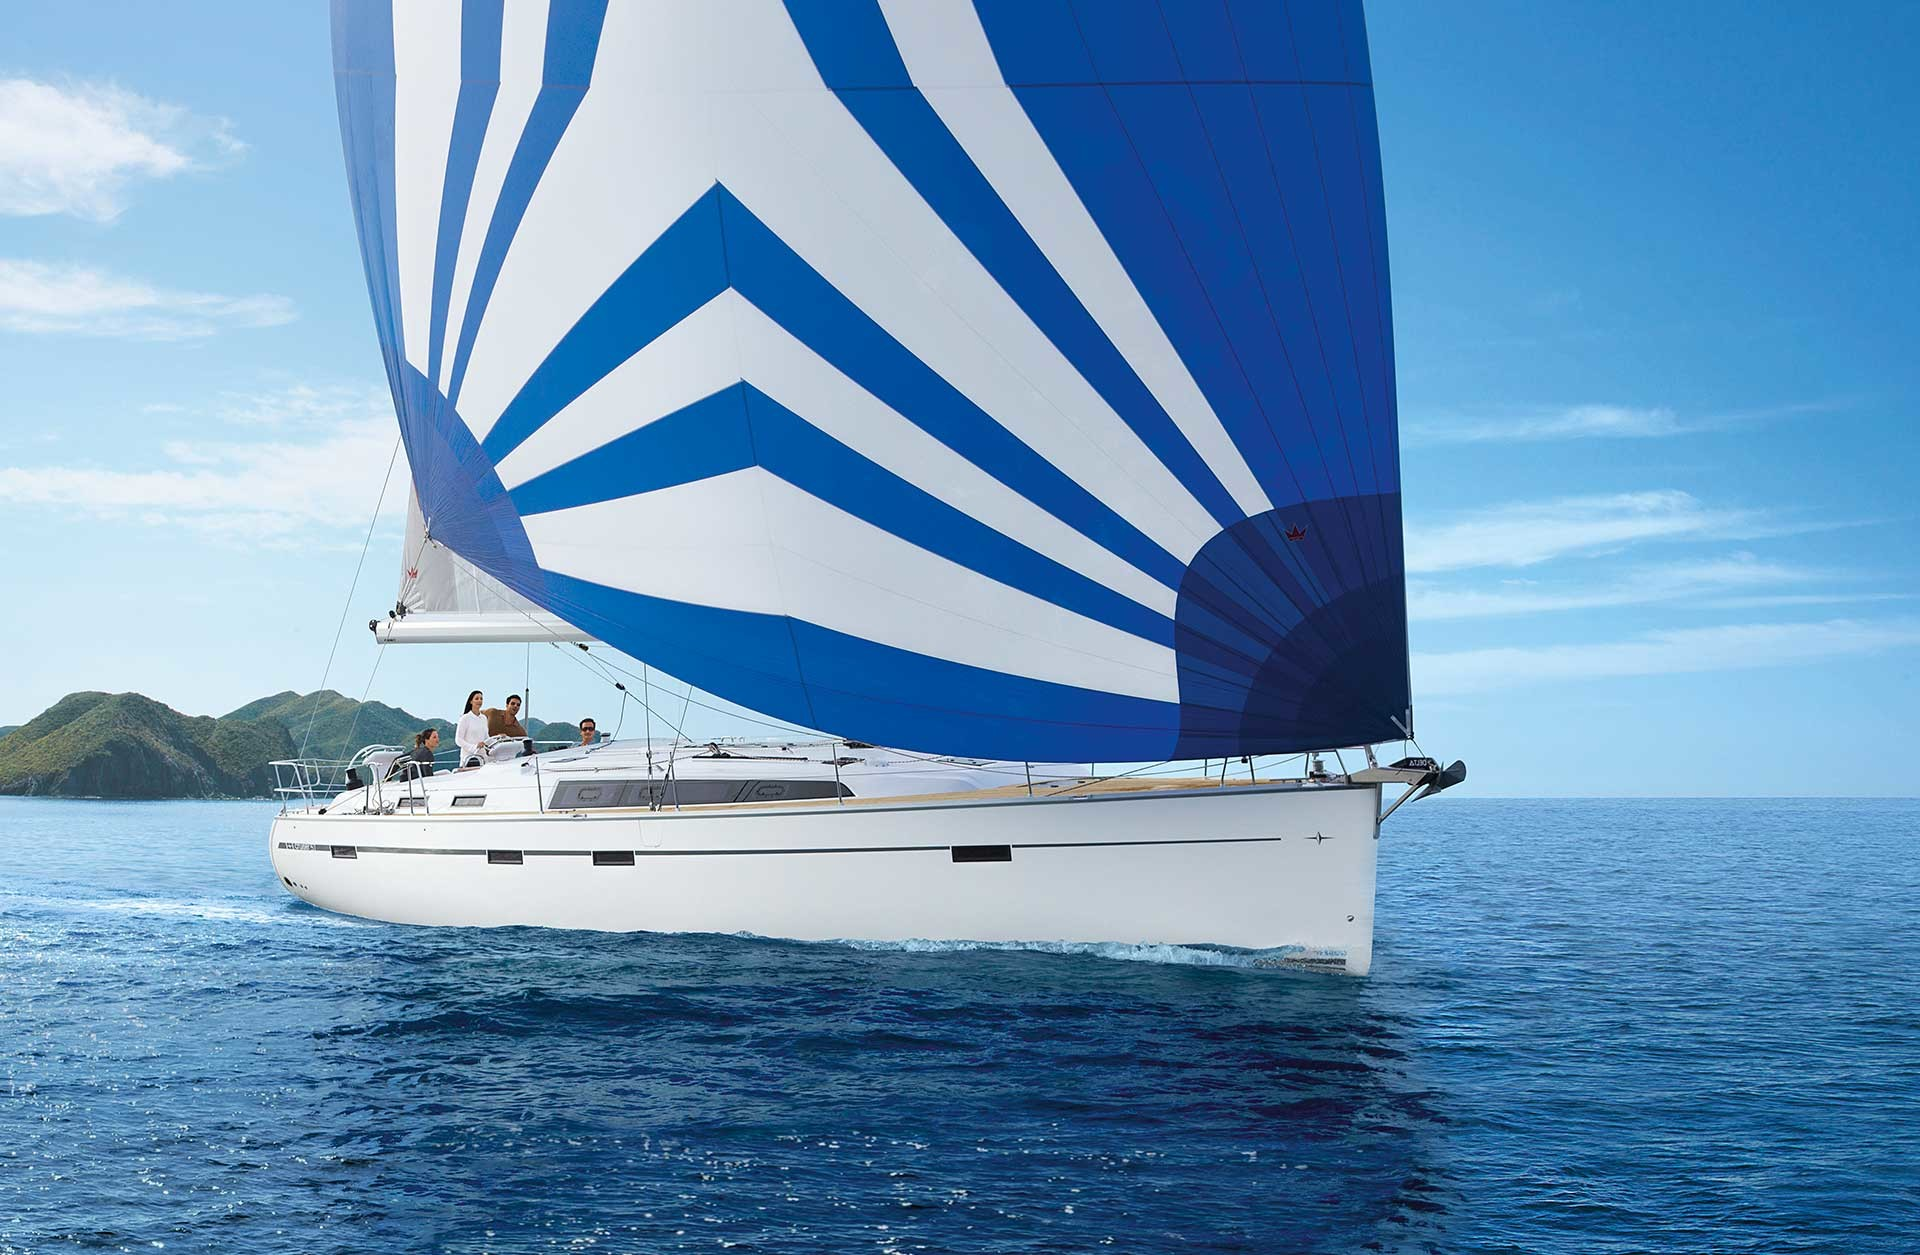 Bavaria Cruiser 51 Class - Sailing Yacht for Charter in Greece